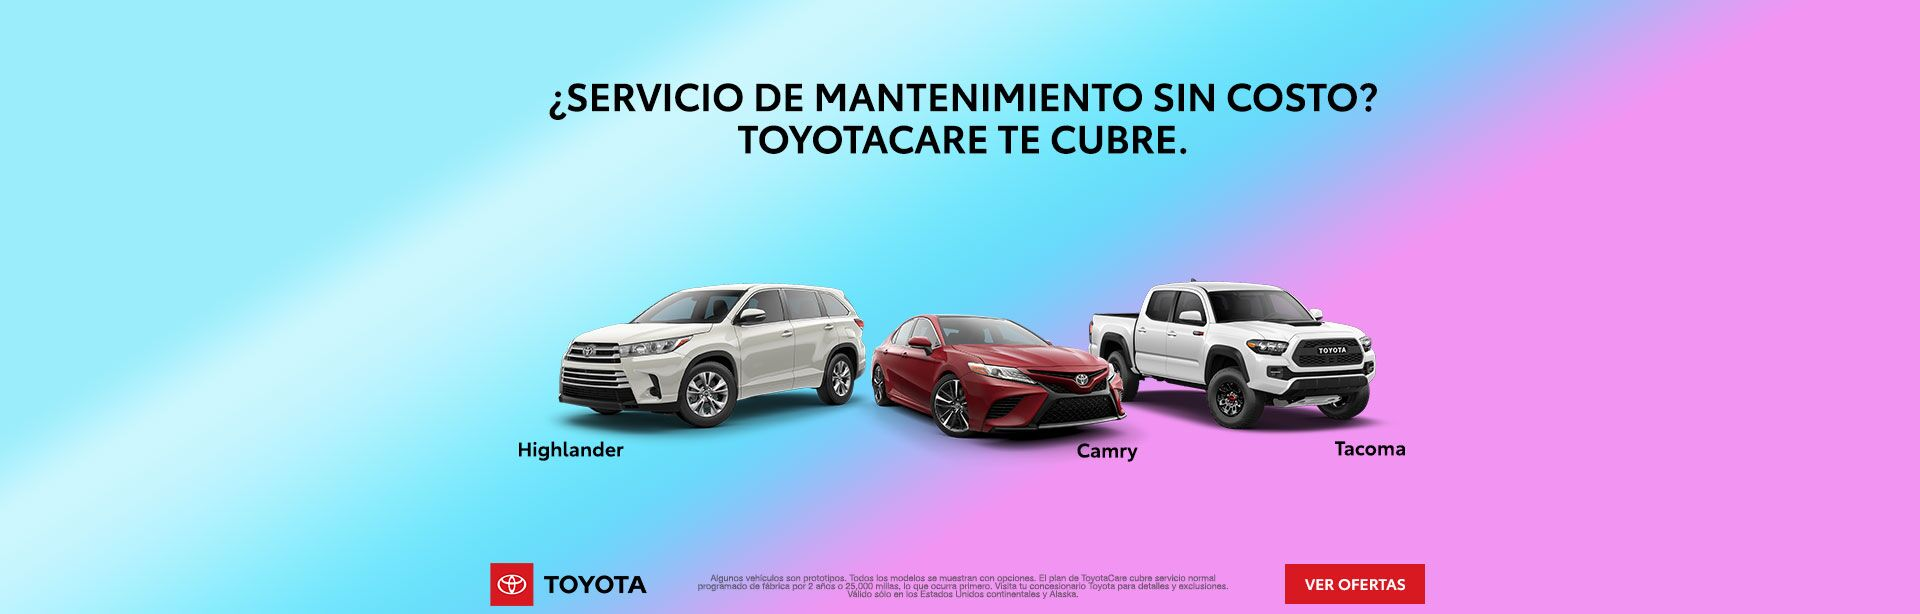 2019 April NYR Spanish ToyotaCare